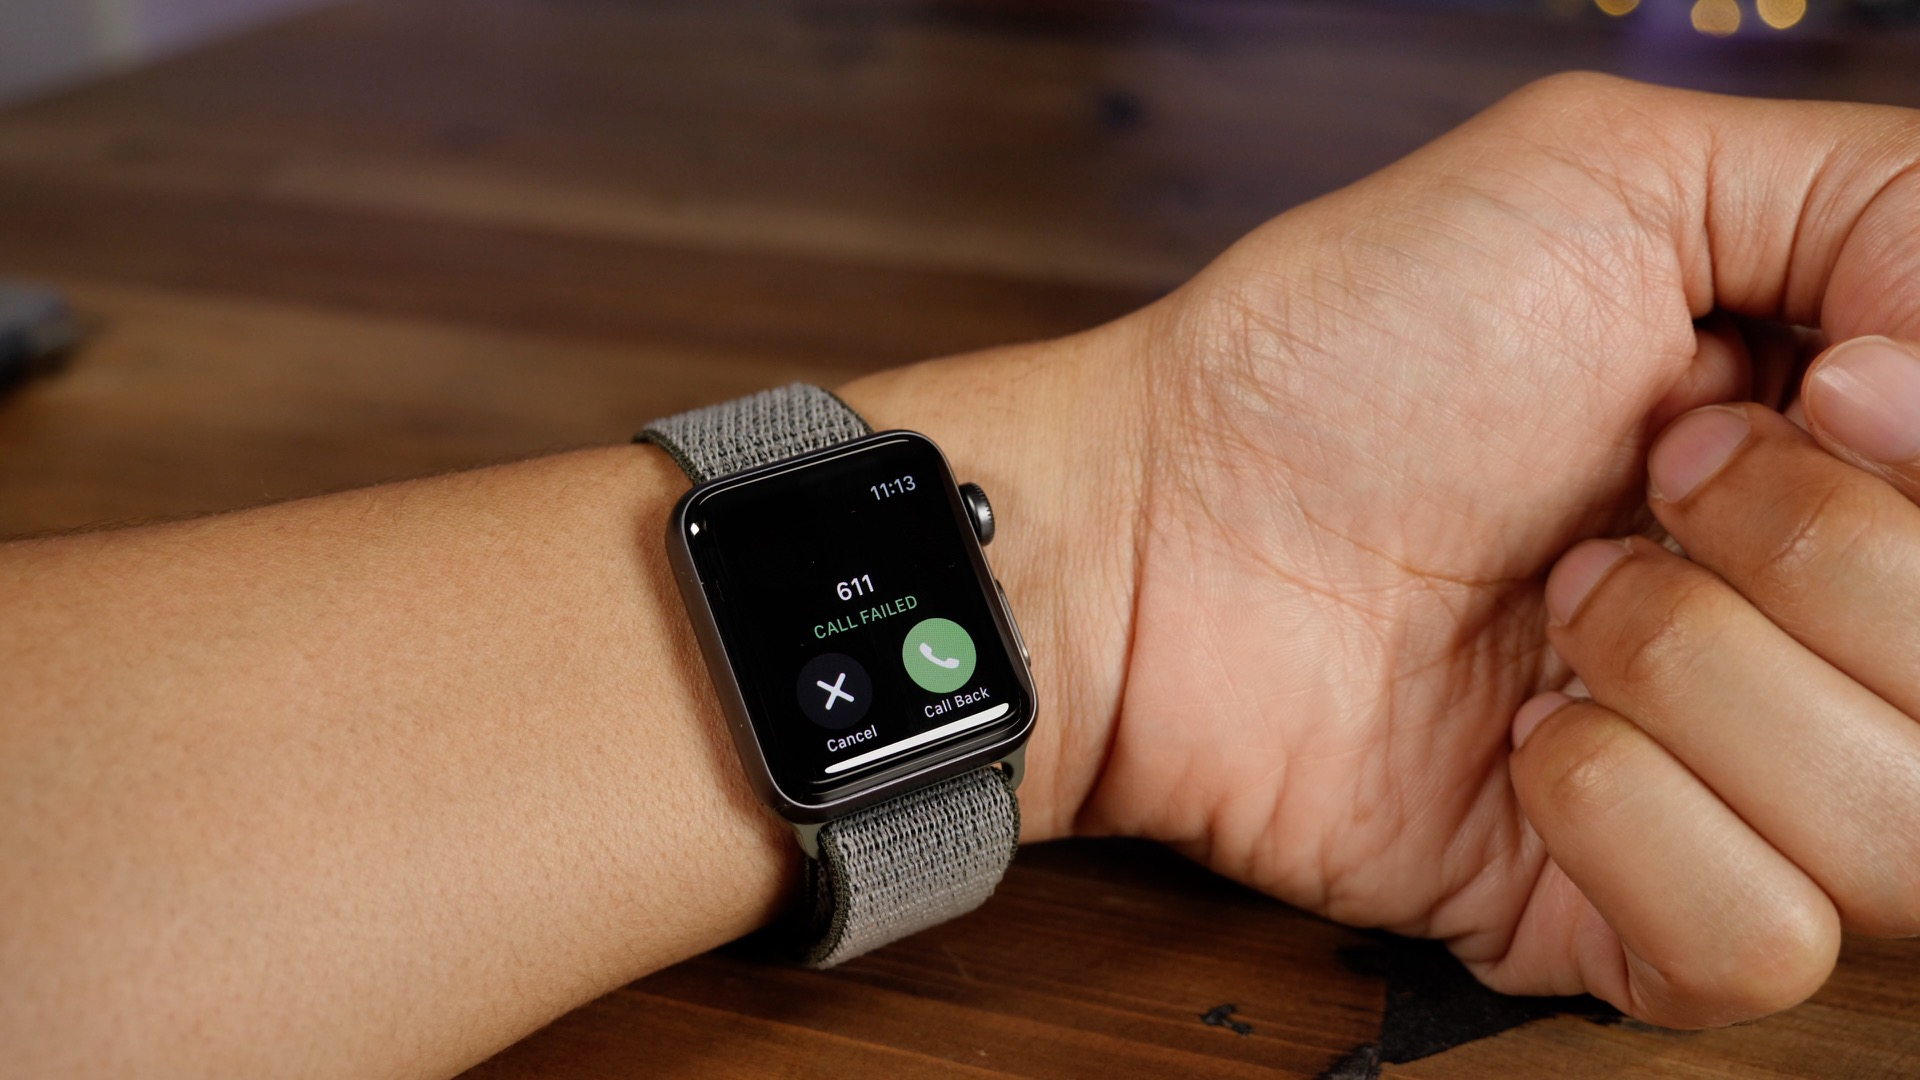 Top New Apple Watch Series 3 Features Is It Worth The Price Premium Video 9to5mac